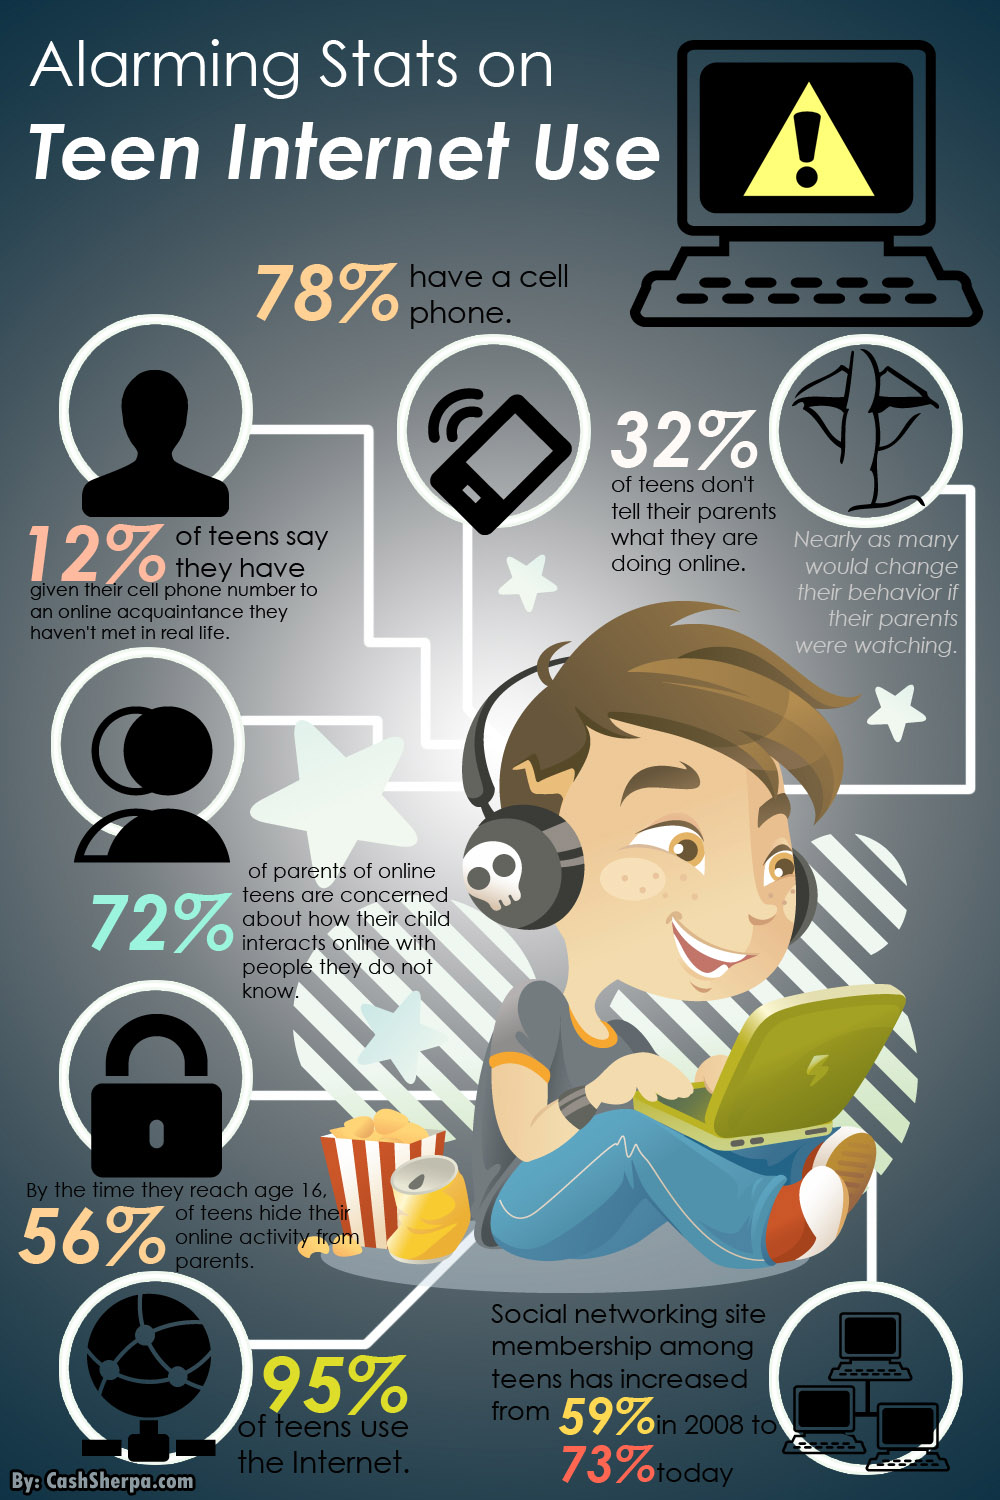 Infographic on teen internet usage